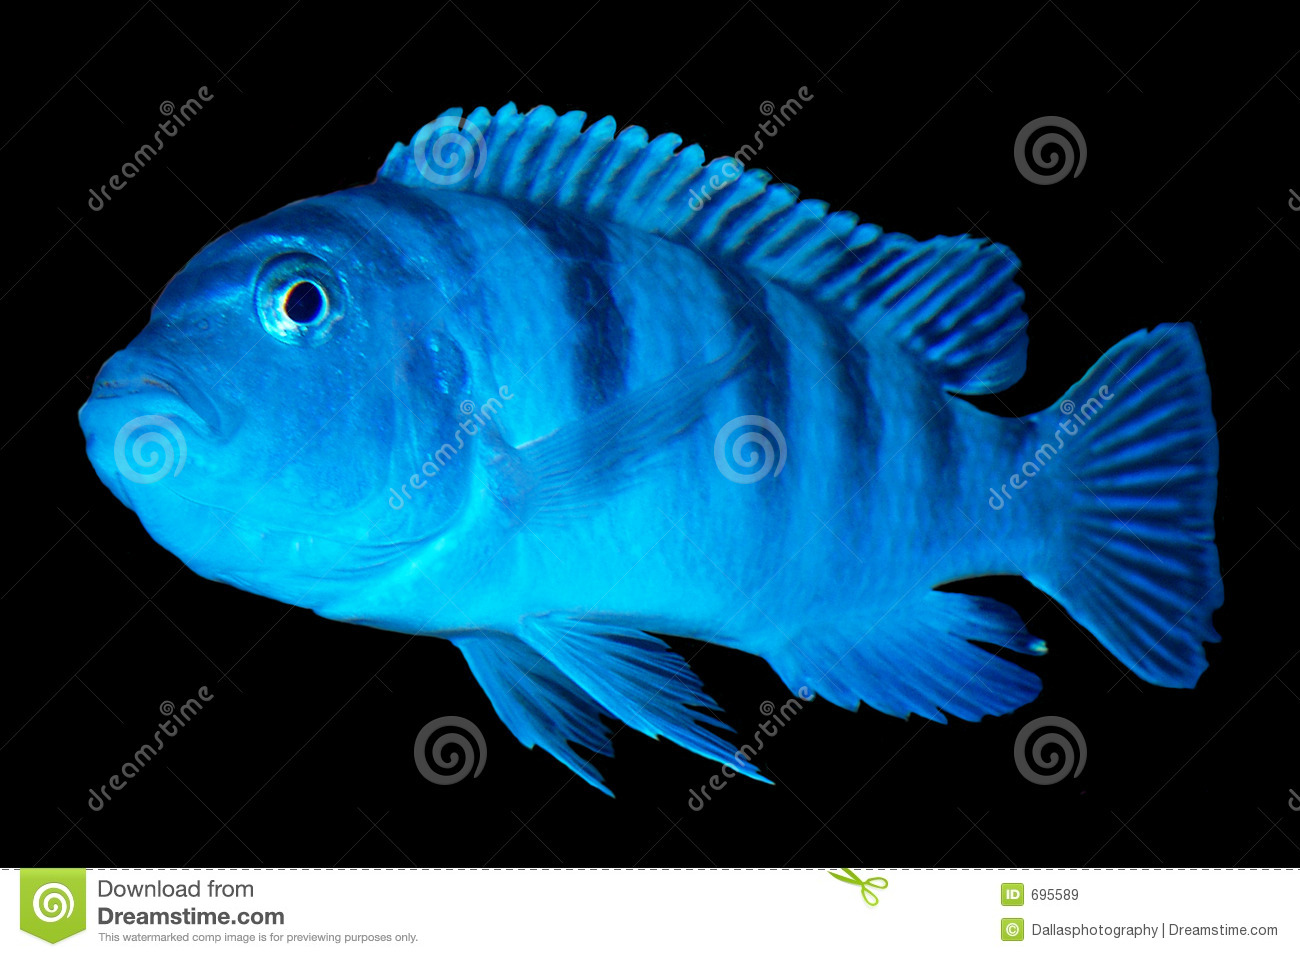 Pregnant kenyi cichlid ad ready stock image image 695589 for Fish dream meaning pregnancy